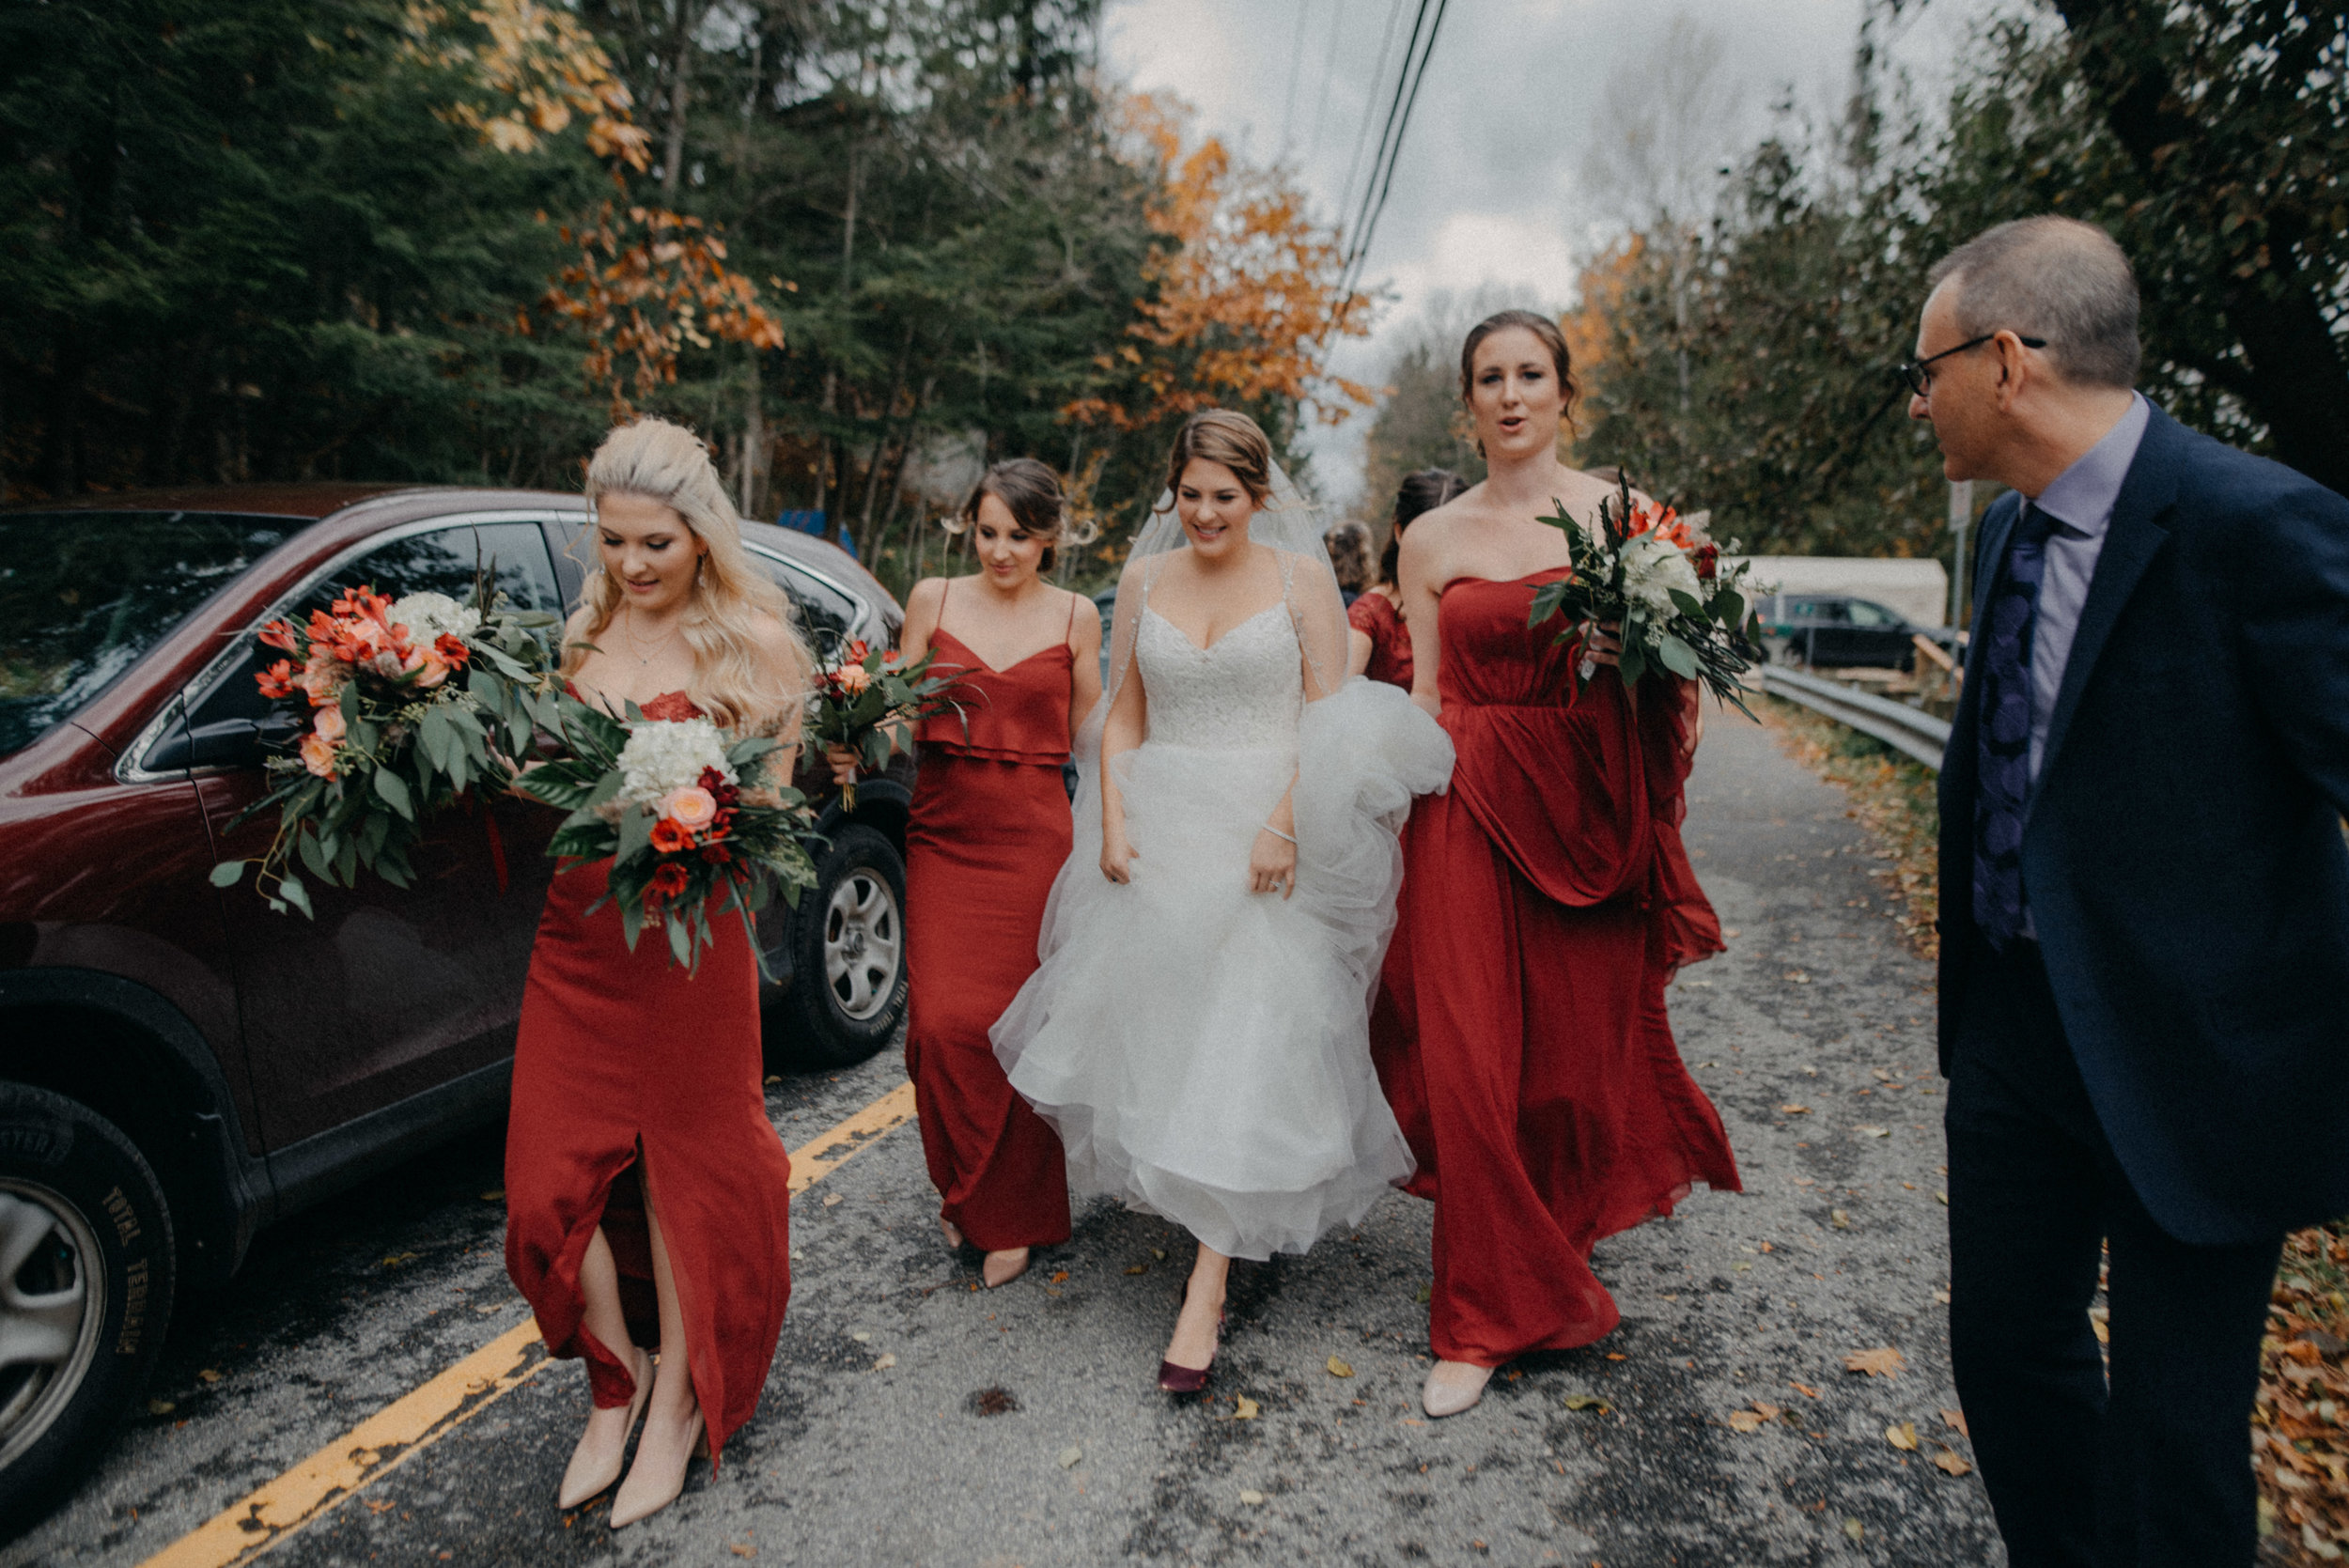 photographe_gatineau_mariage_ottawa_photographer_wedding_natasha_liard_photo_documentary_candid_lifestyle_wakefield_mill_red_bridge (23).jpg